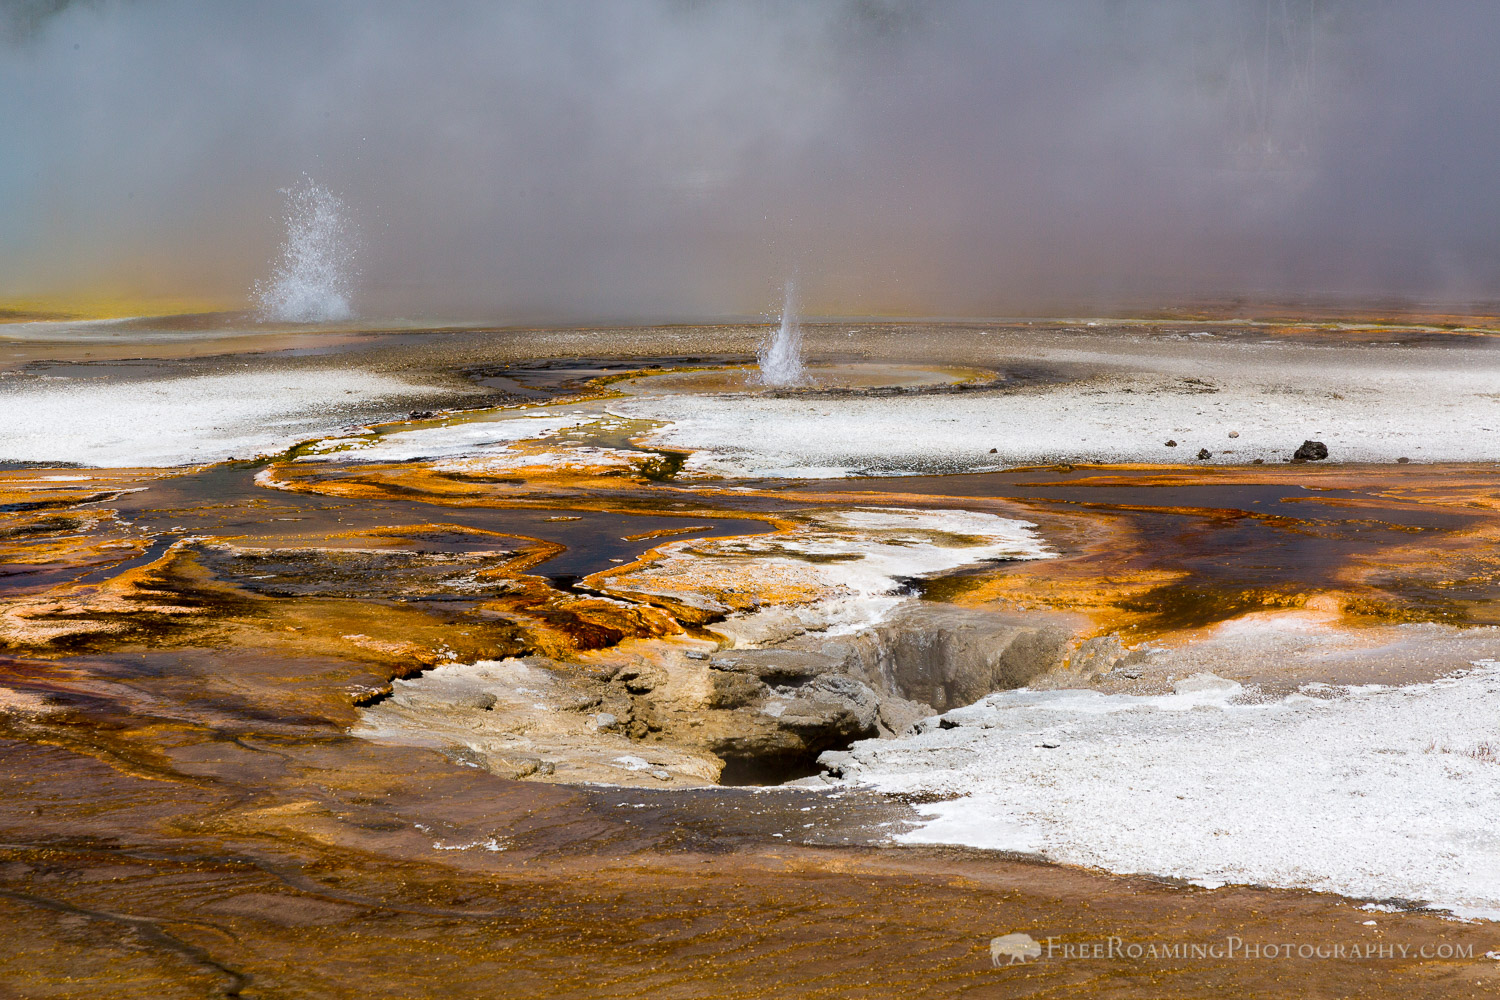 Thermophiles and Geysers